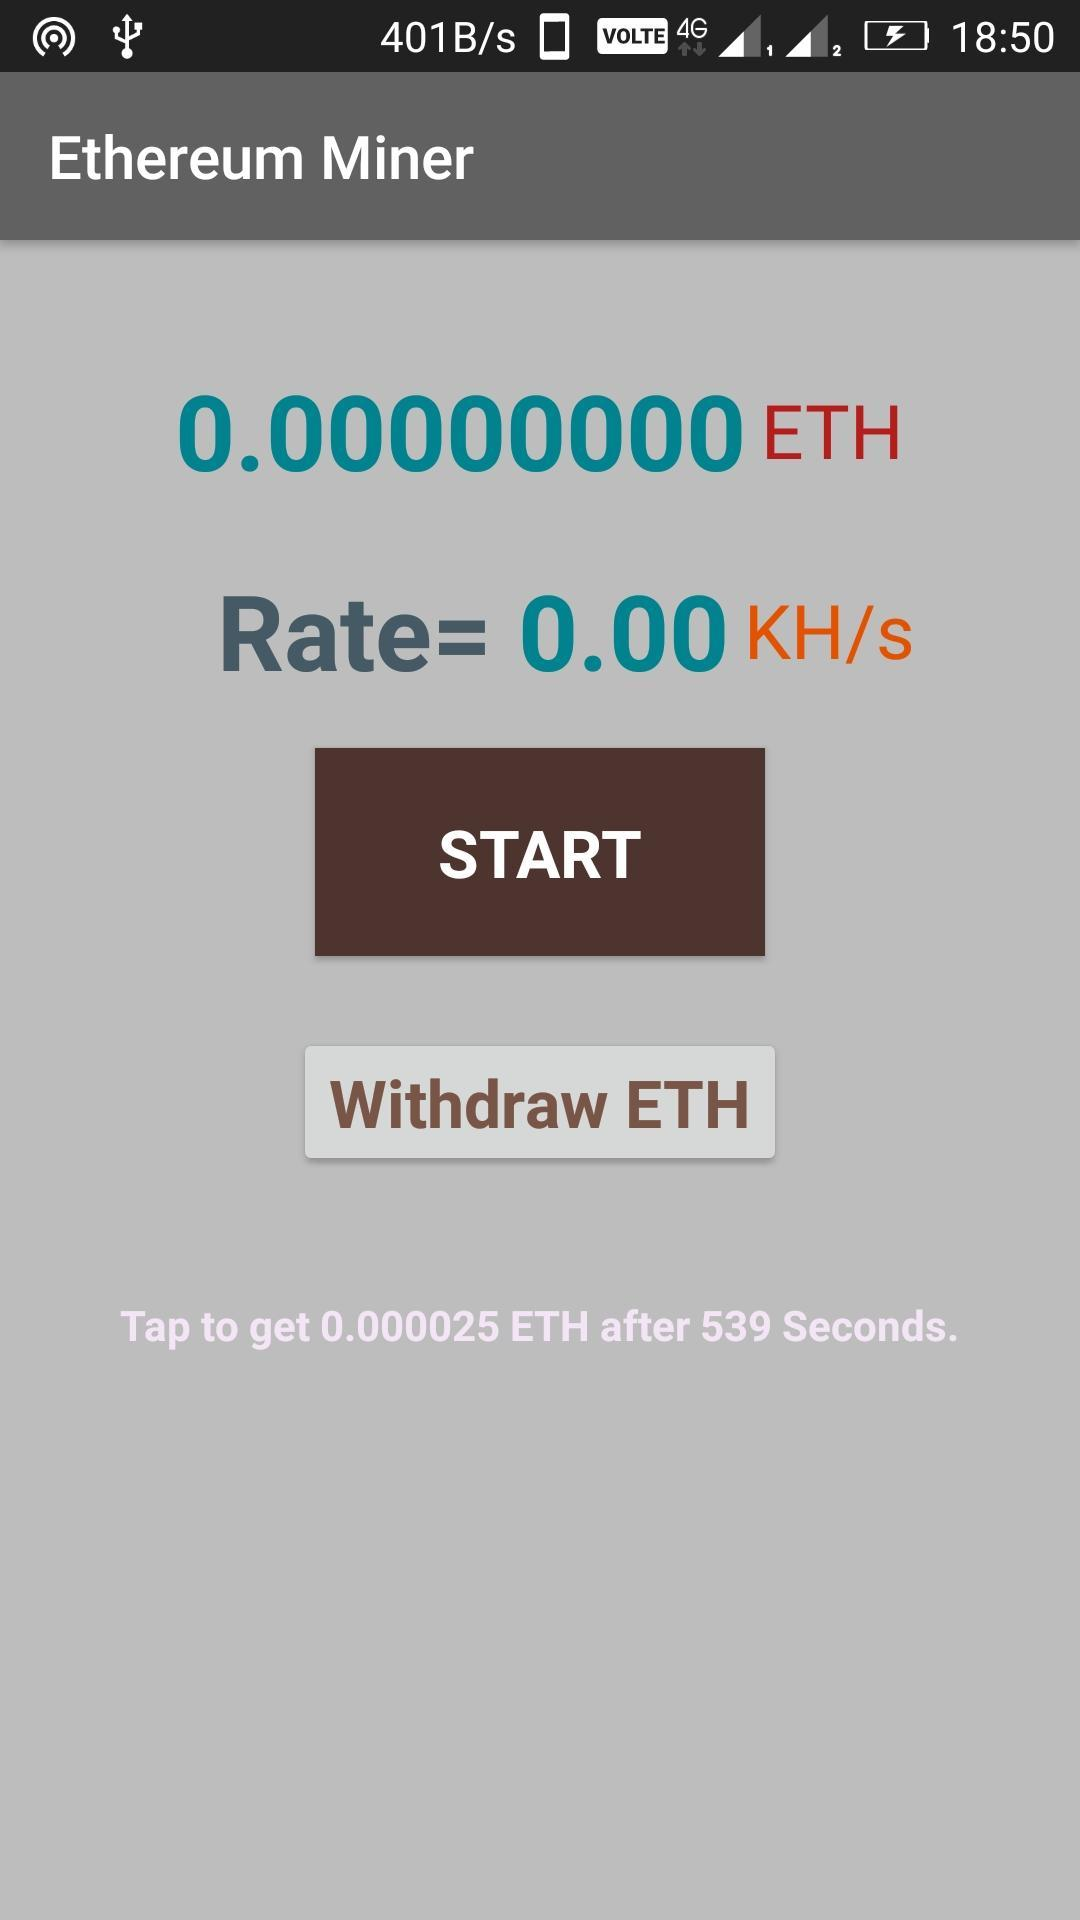 Ethereum Miner for Android - APK Download